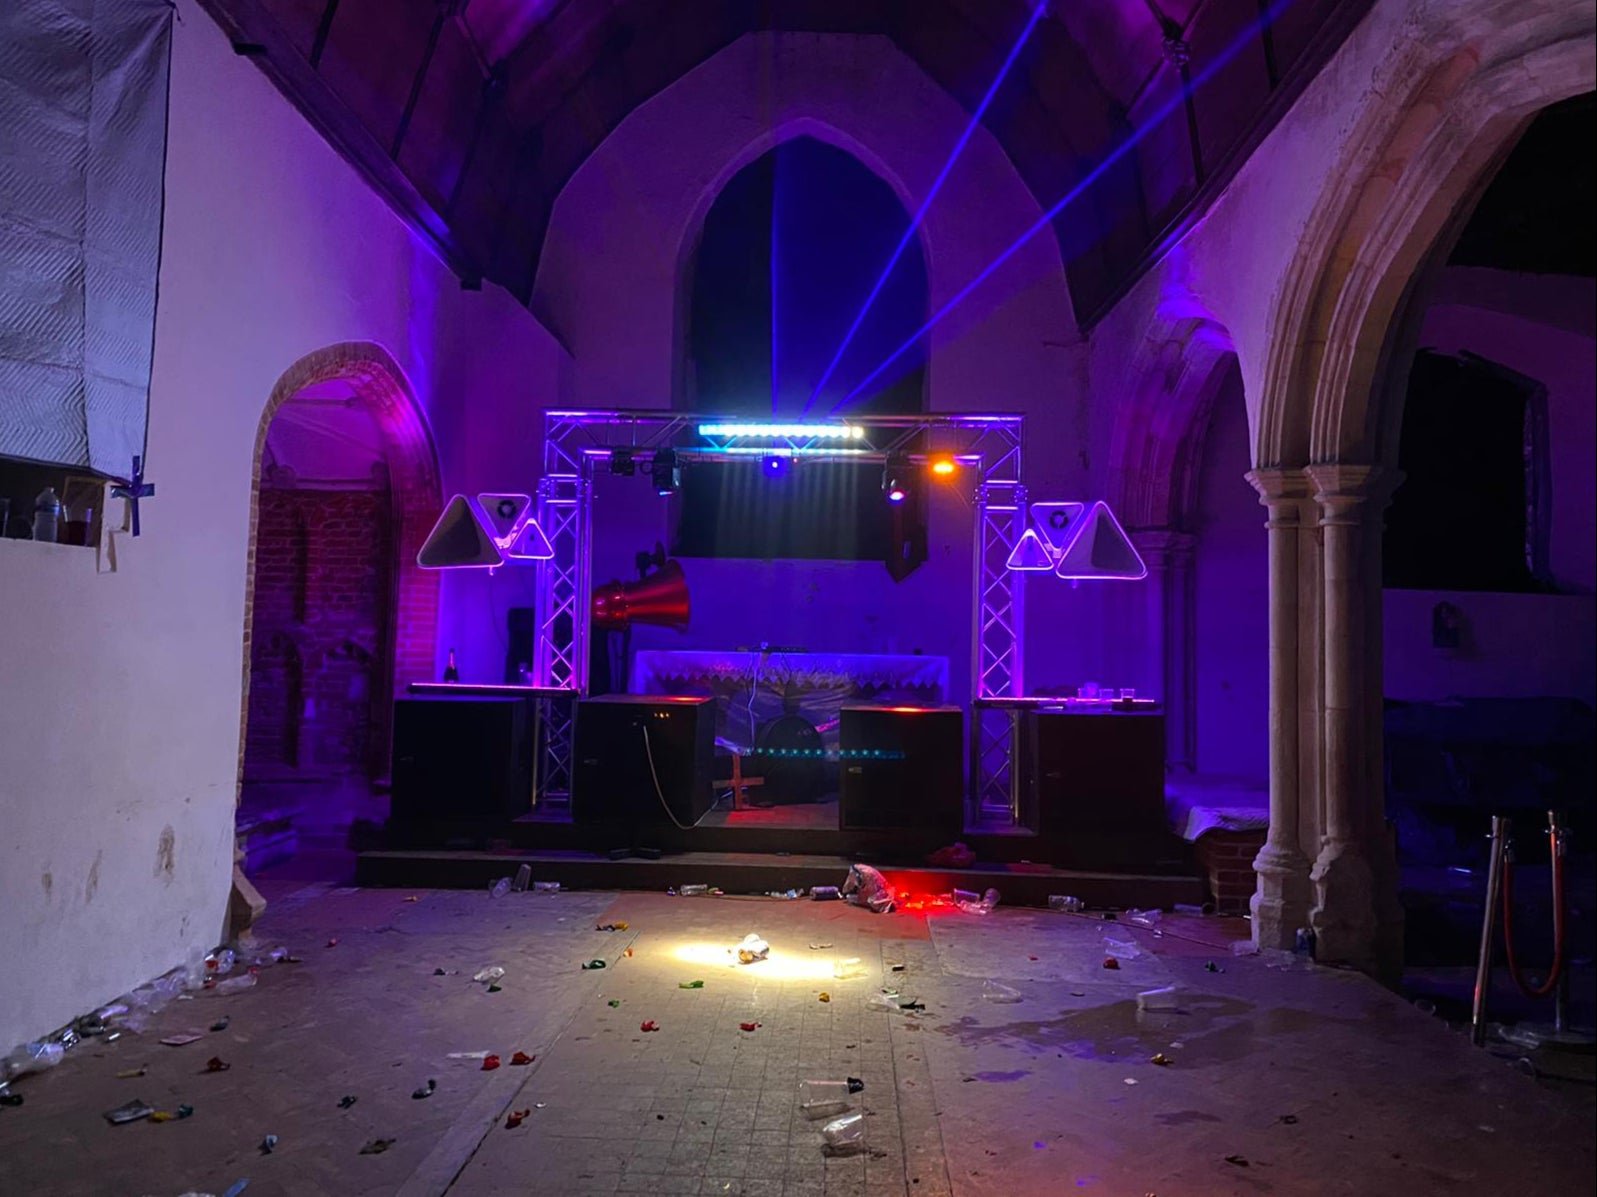 Three arrested after New Year's Eve party leaves 500-year-old church trashed